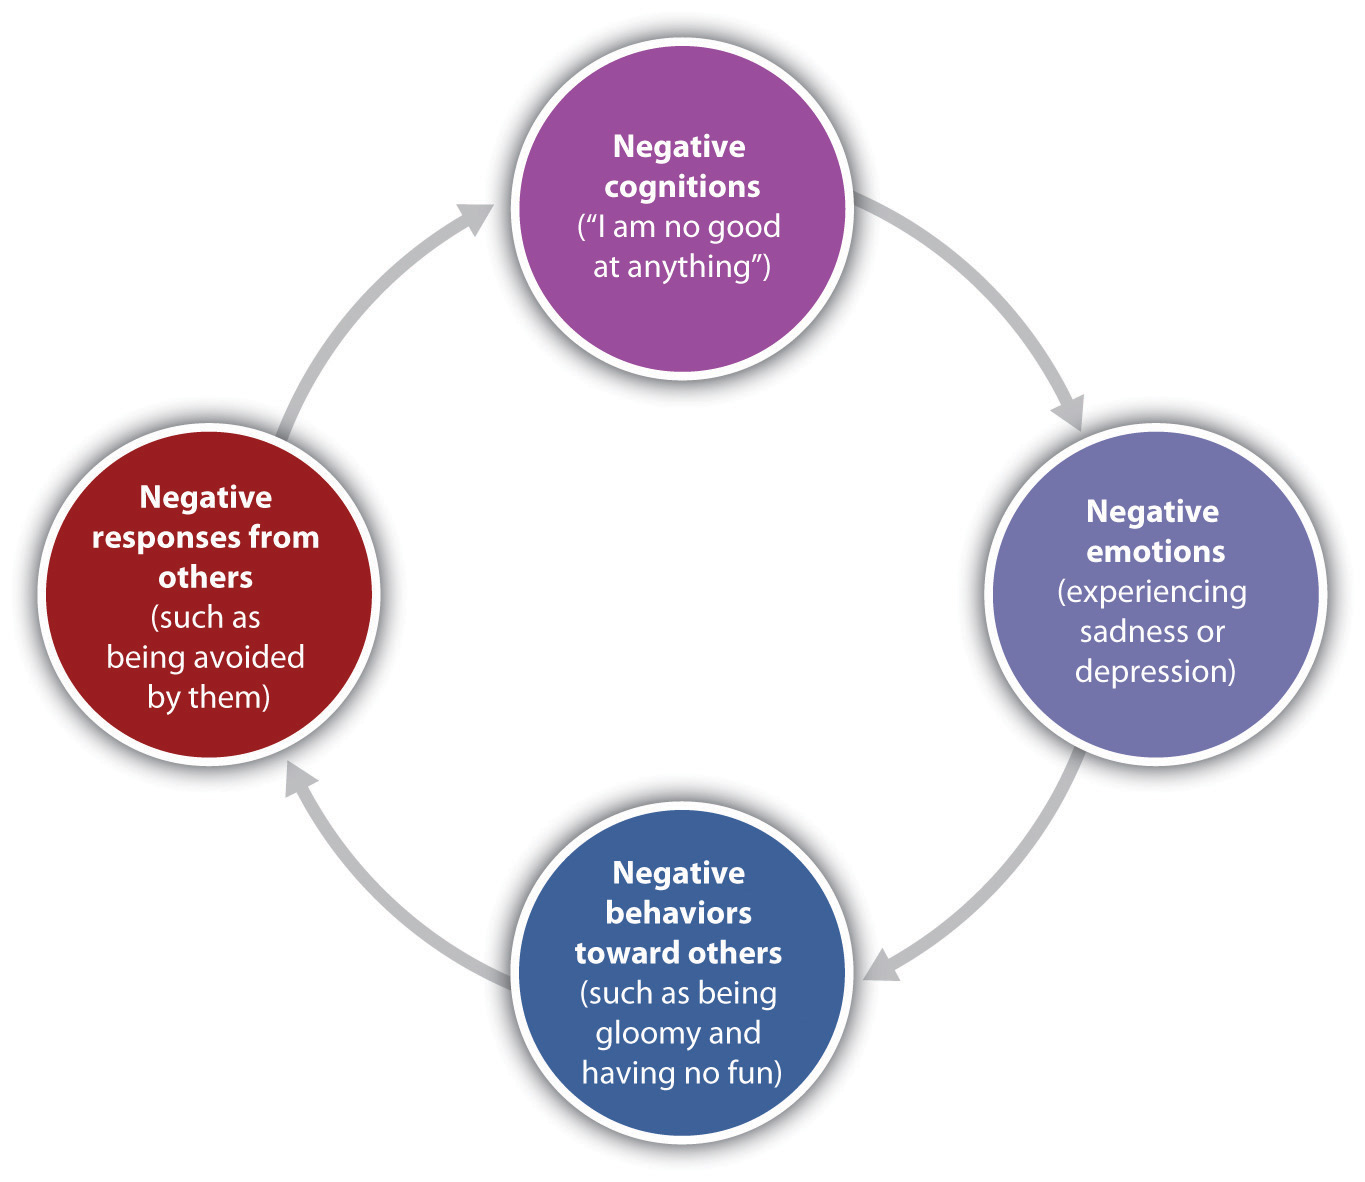 Cycle of Depression (Negative emotions create negative behaviors, which lead people to respond negatively to the individual, creating even more depression.)